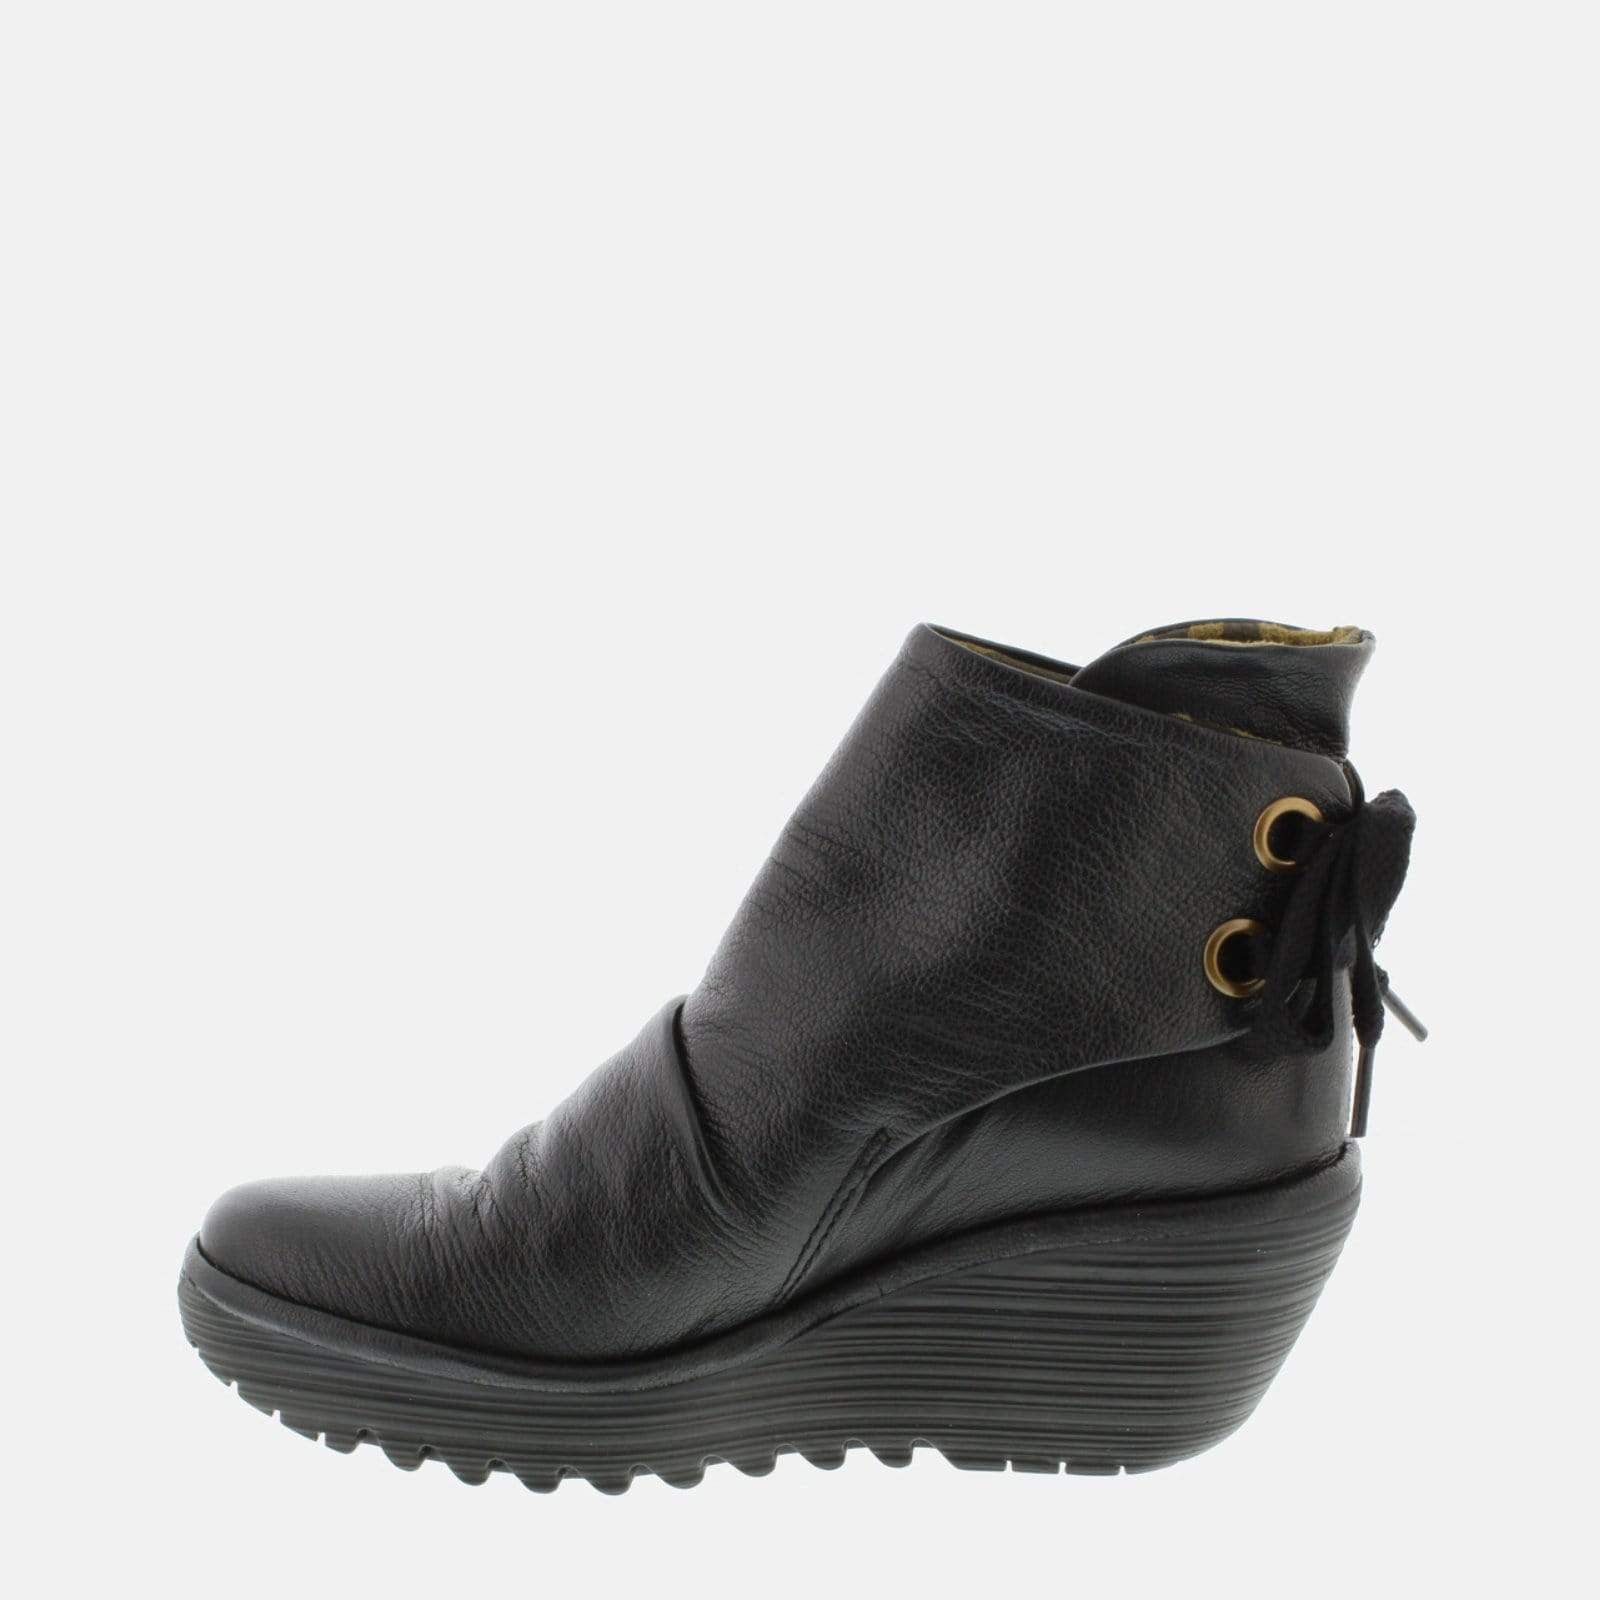 Fly London Footwear Yama Black Mousse